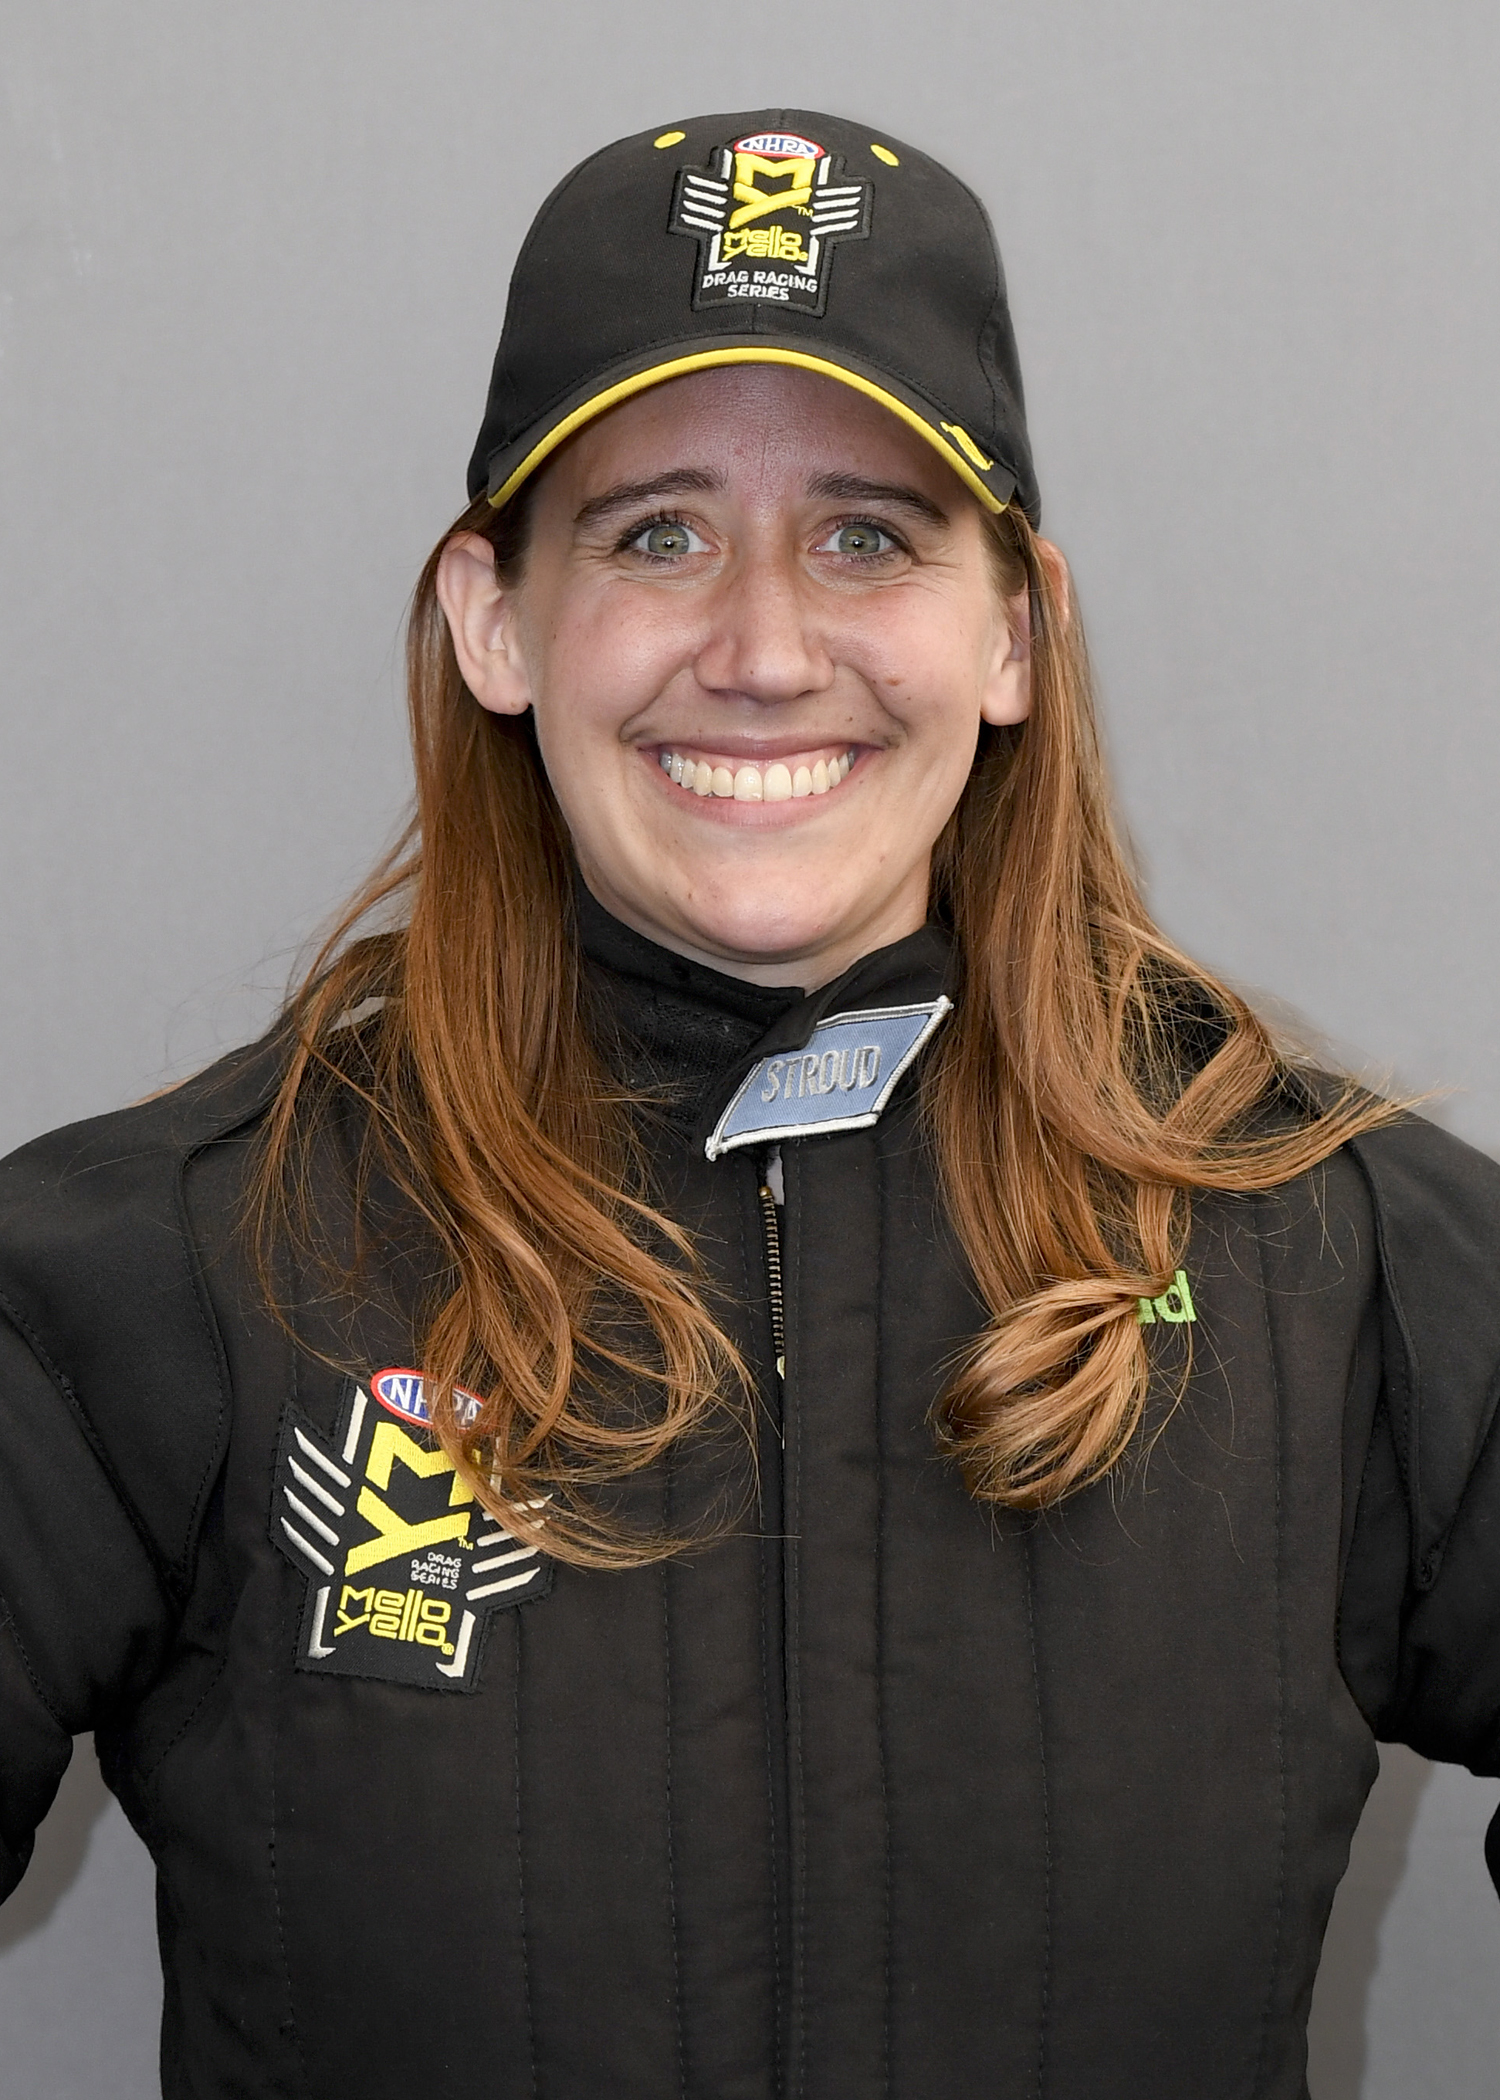 NHRA Rookie - Top Fuel - Audrey Worm